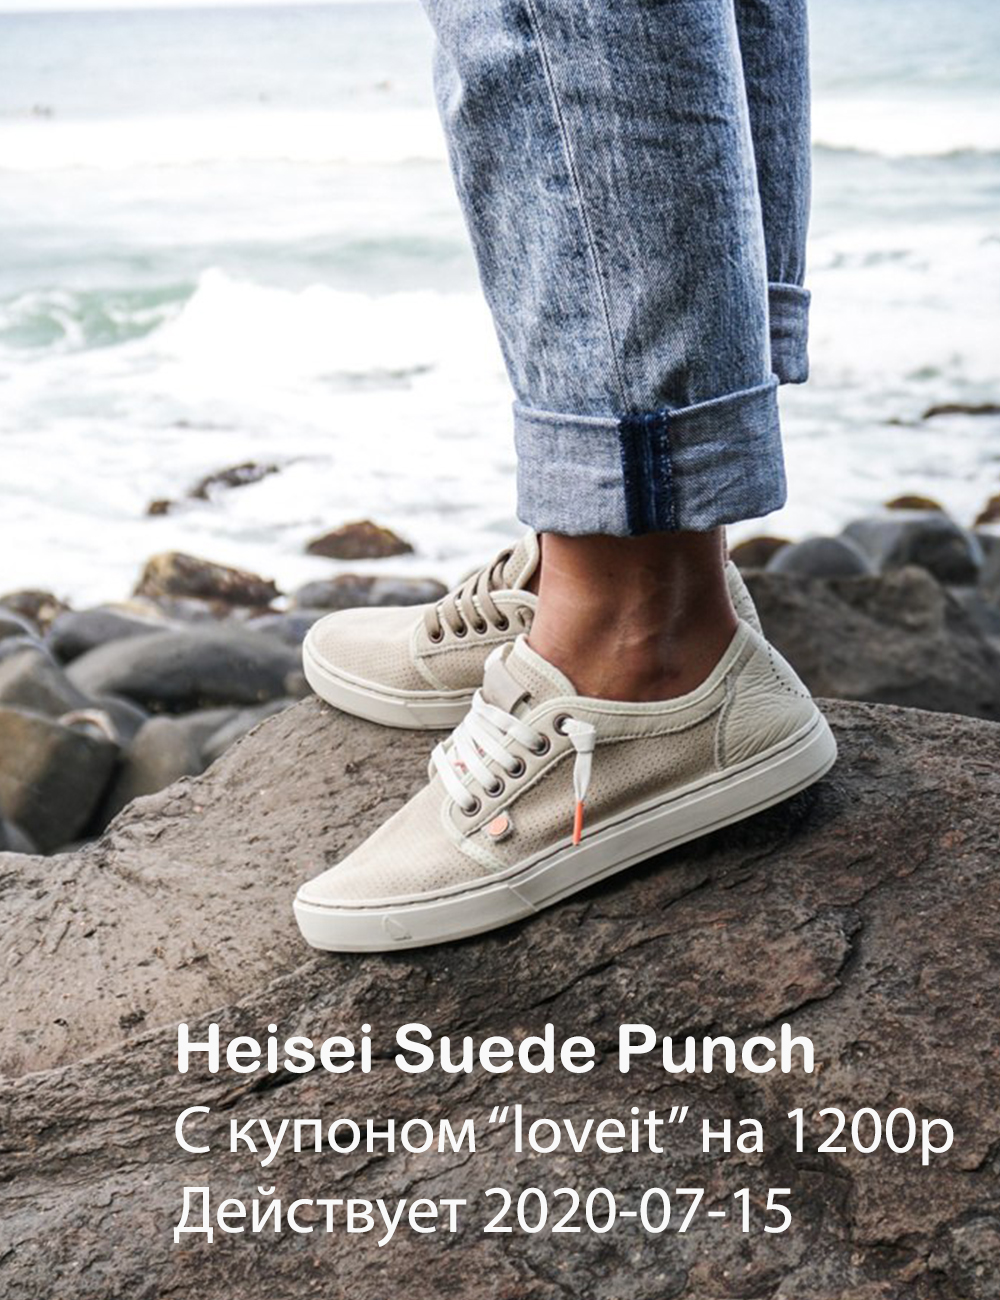 suede punch